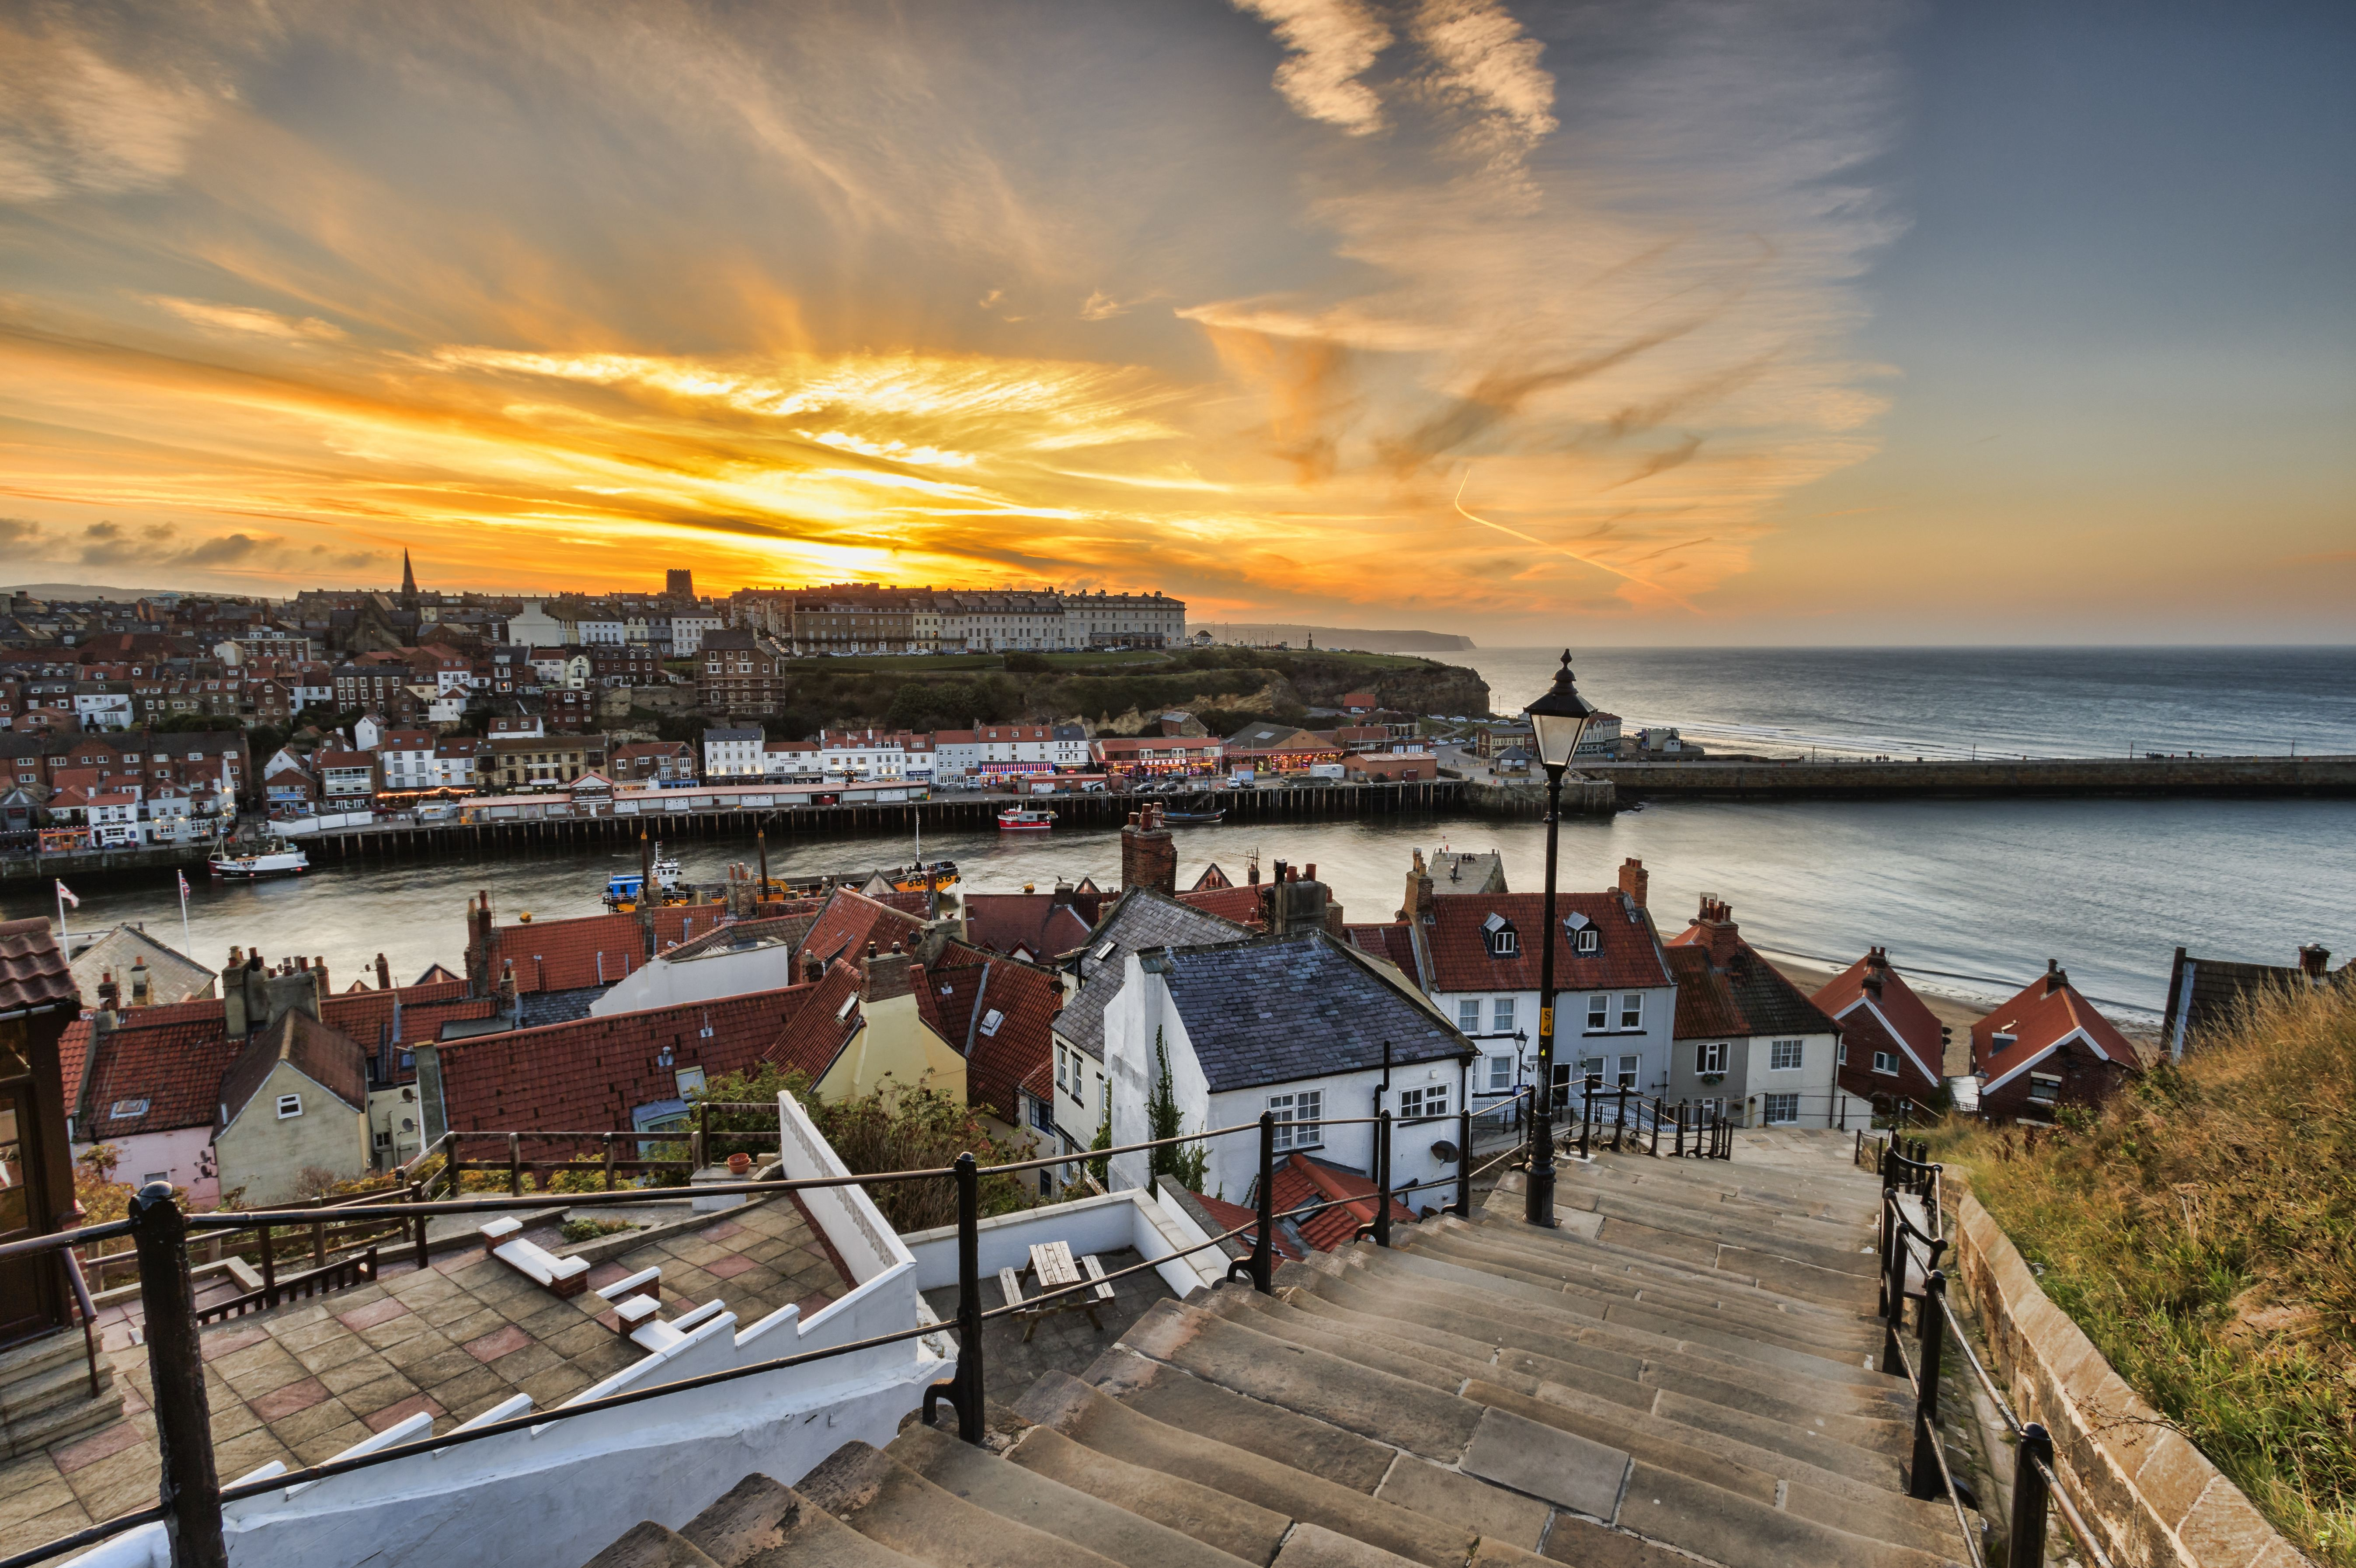 The Charming English Fishing Village That Inspired Dracula